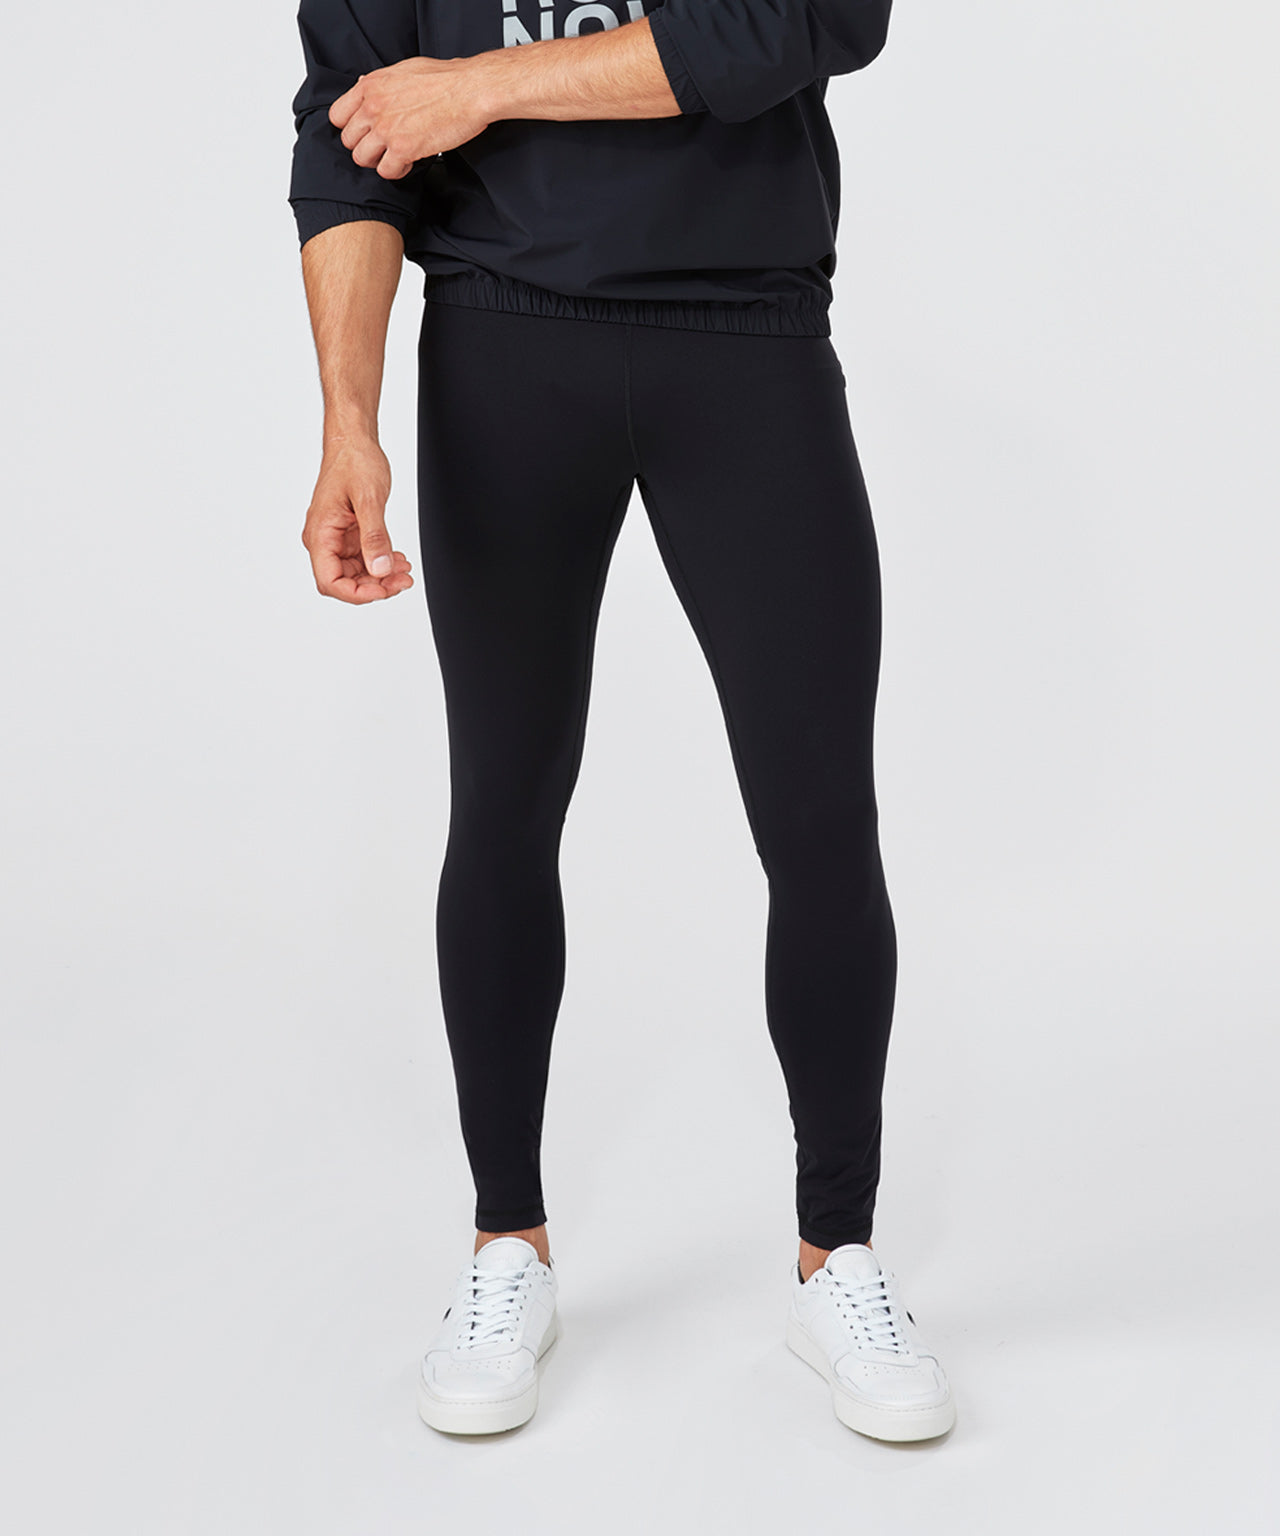 Leggings RON RUN - black